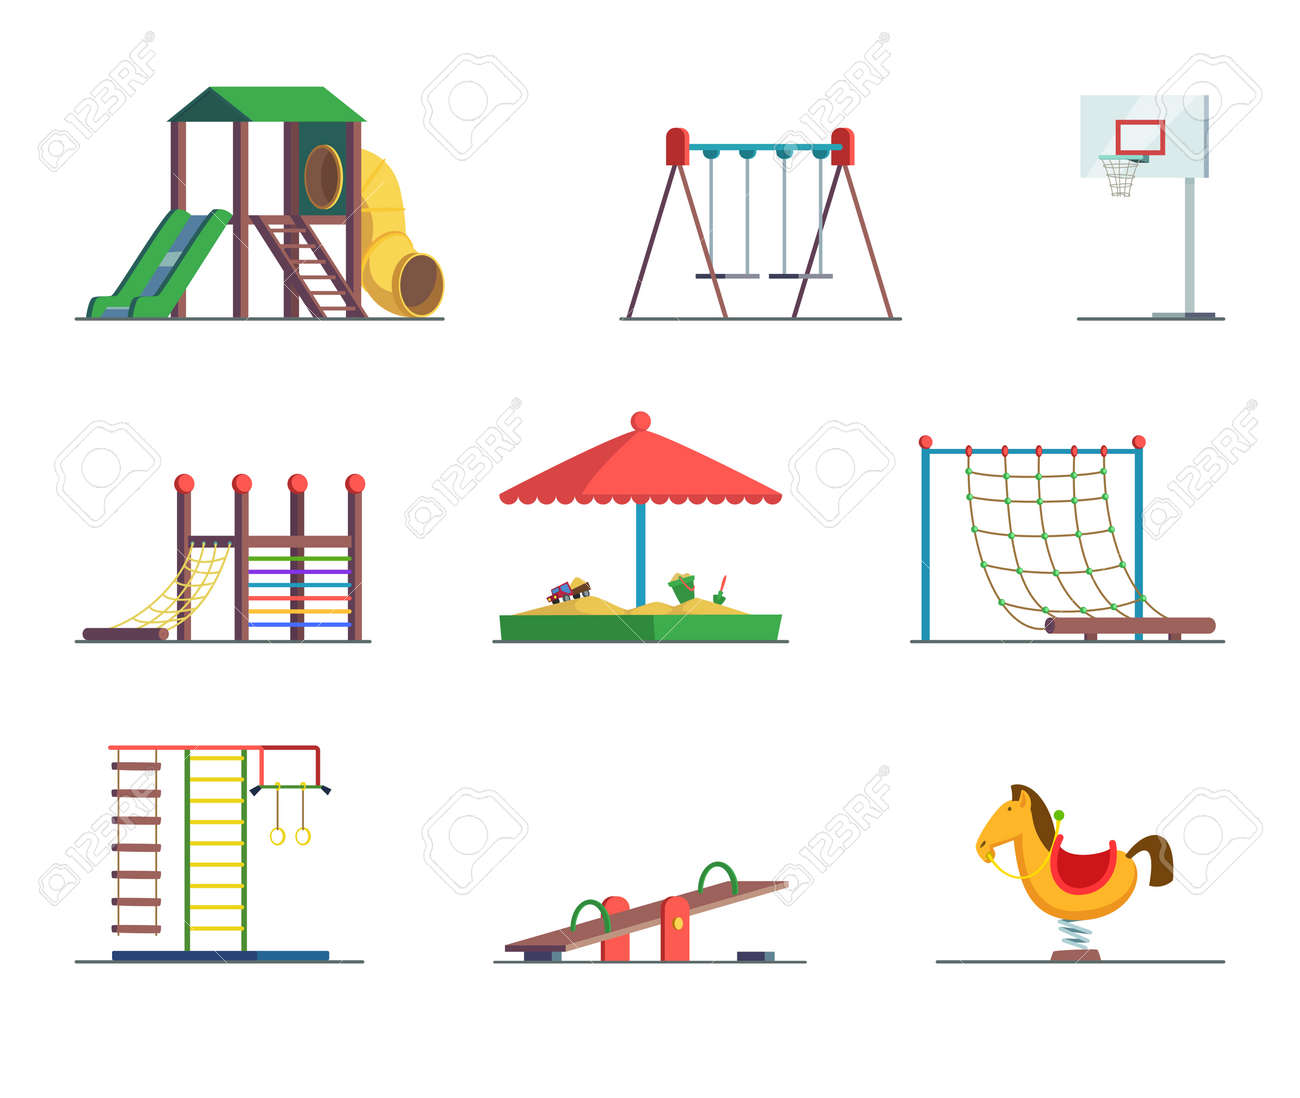 Playground equipment. Fun area for kids. Vector set playground and swing for amusement park illustration - 166849292